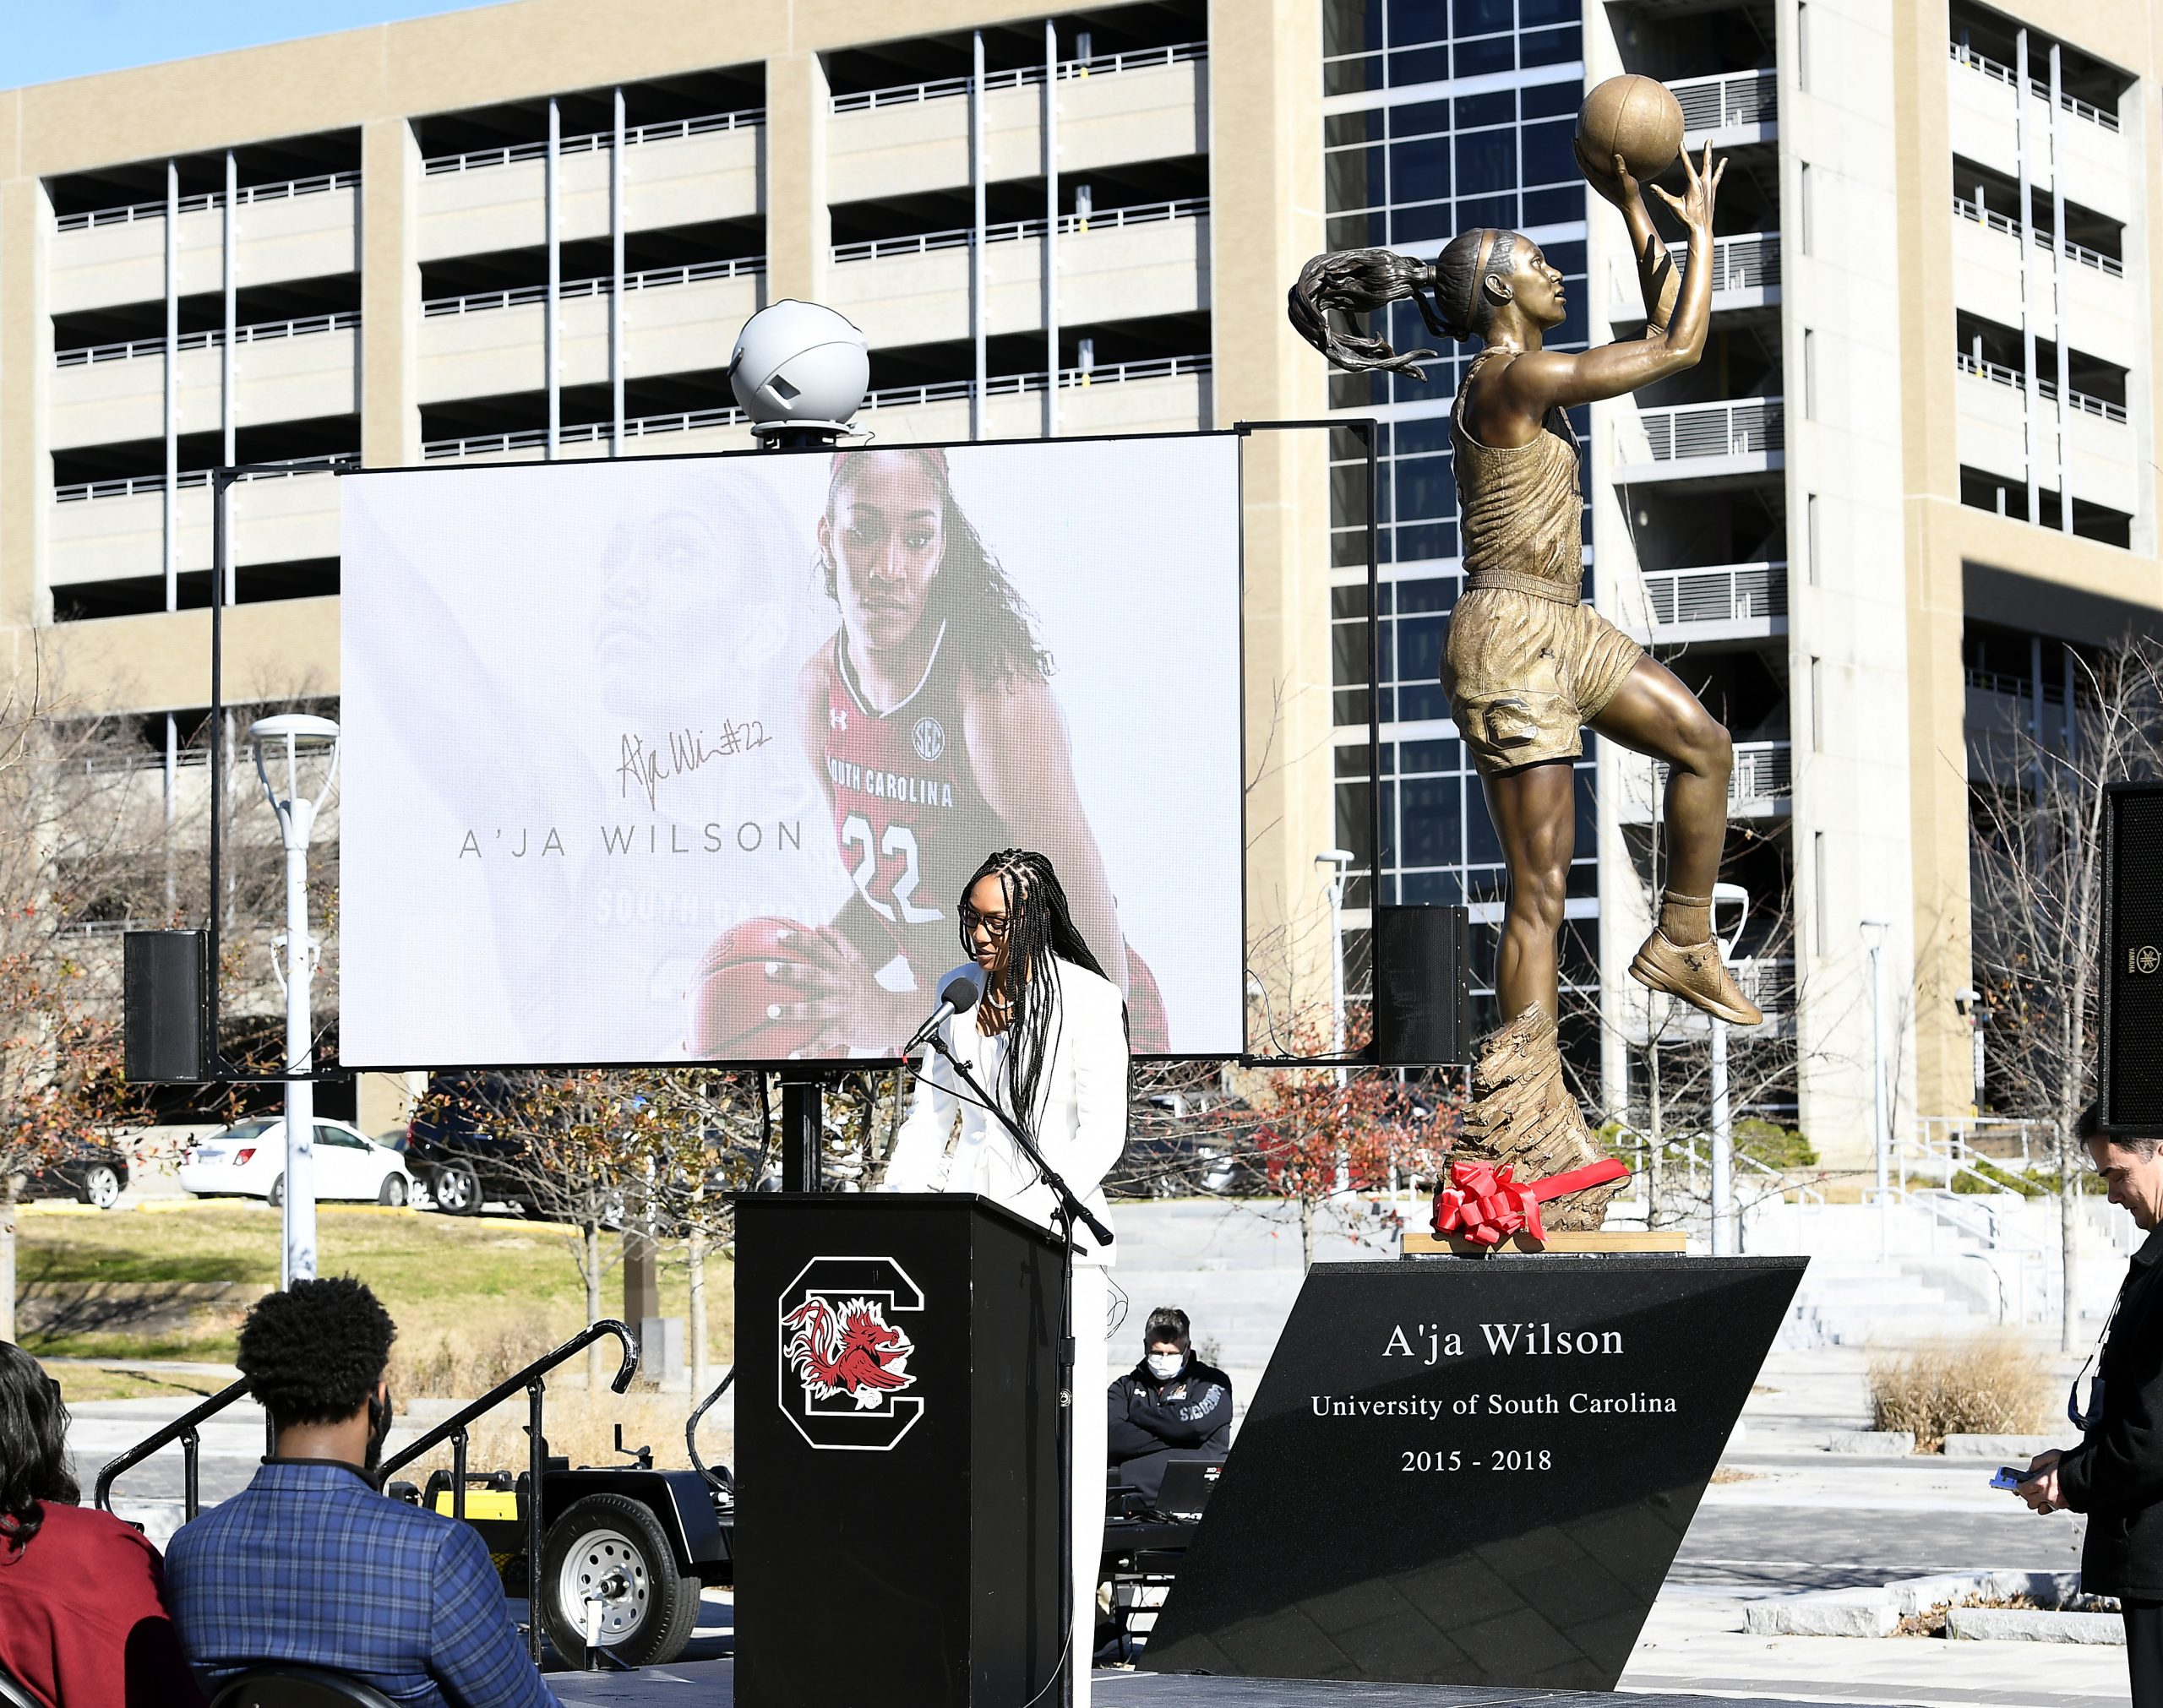 A'ja Wilson 2021, A'ja Wilson Gamecocks Statue, A'ja Wilson South Carolina Statue, A'ja Wilson South Carolina Statue Ceremony, A'ja Wilson State Ceremony, A'ja Wilson Statue